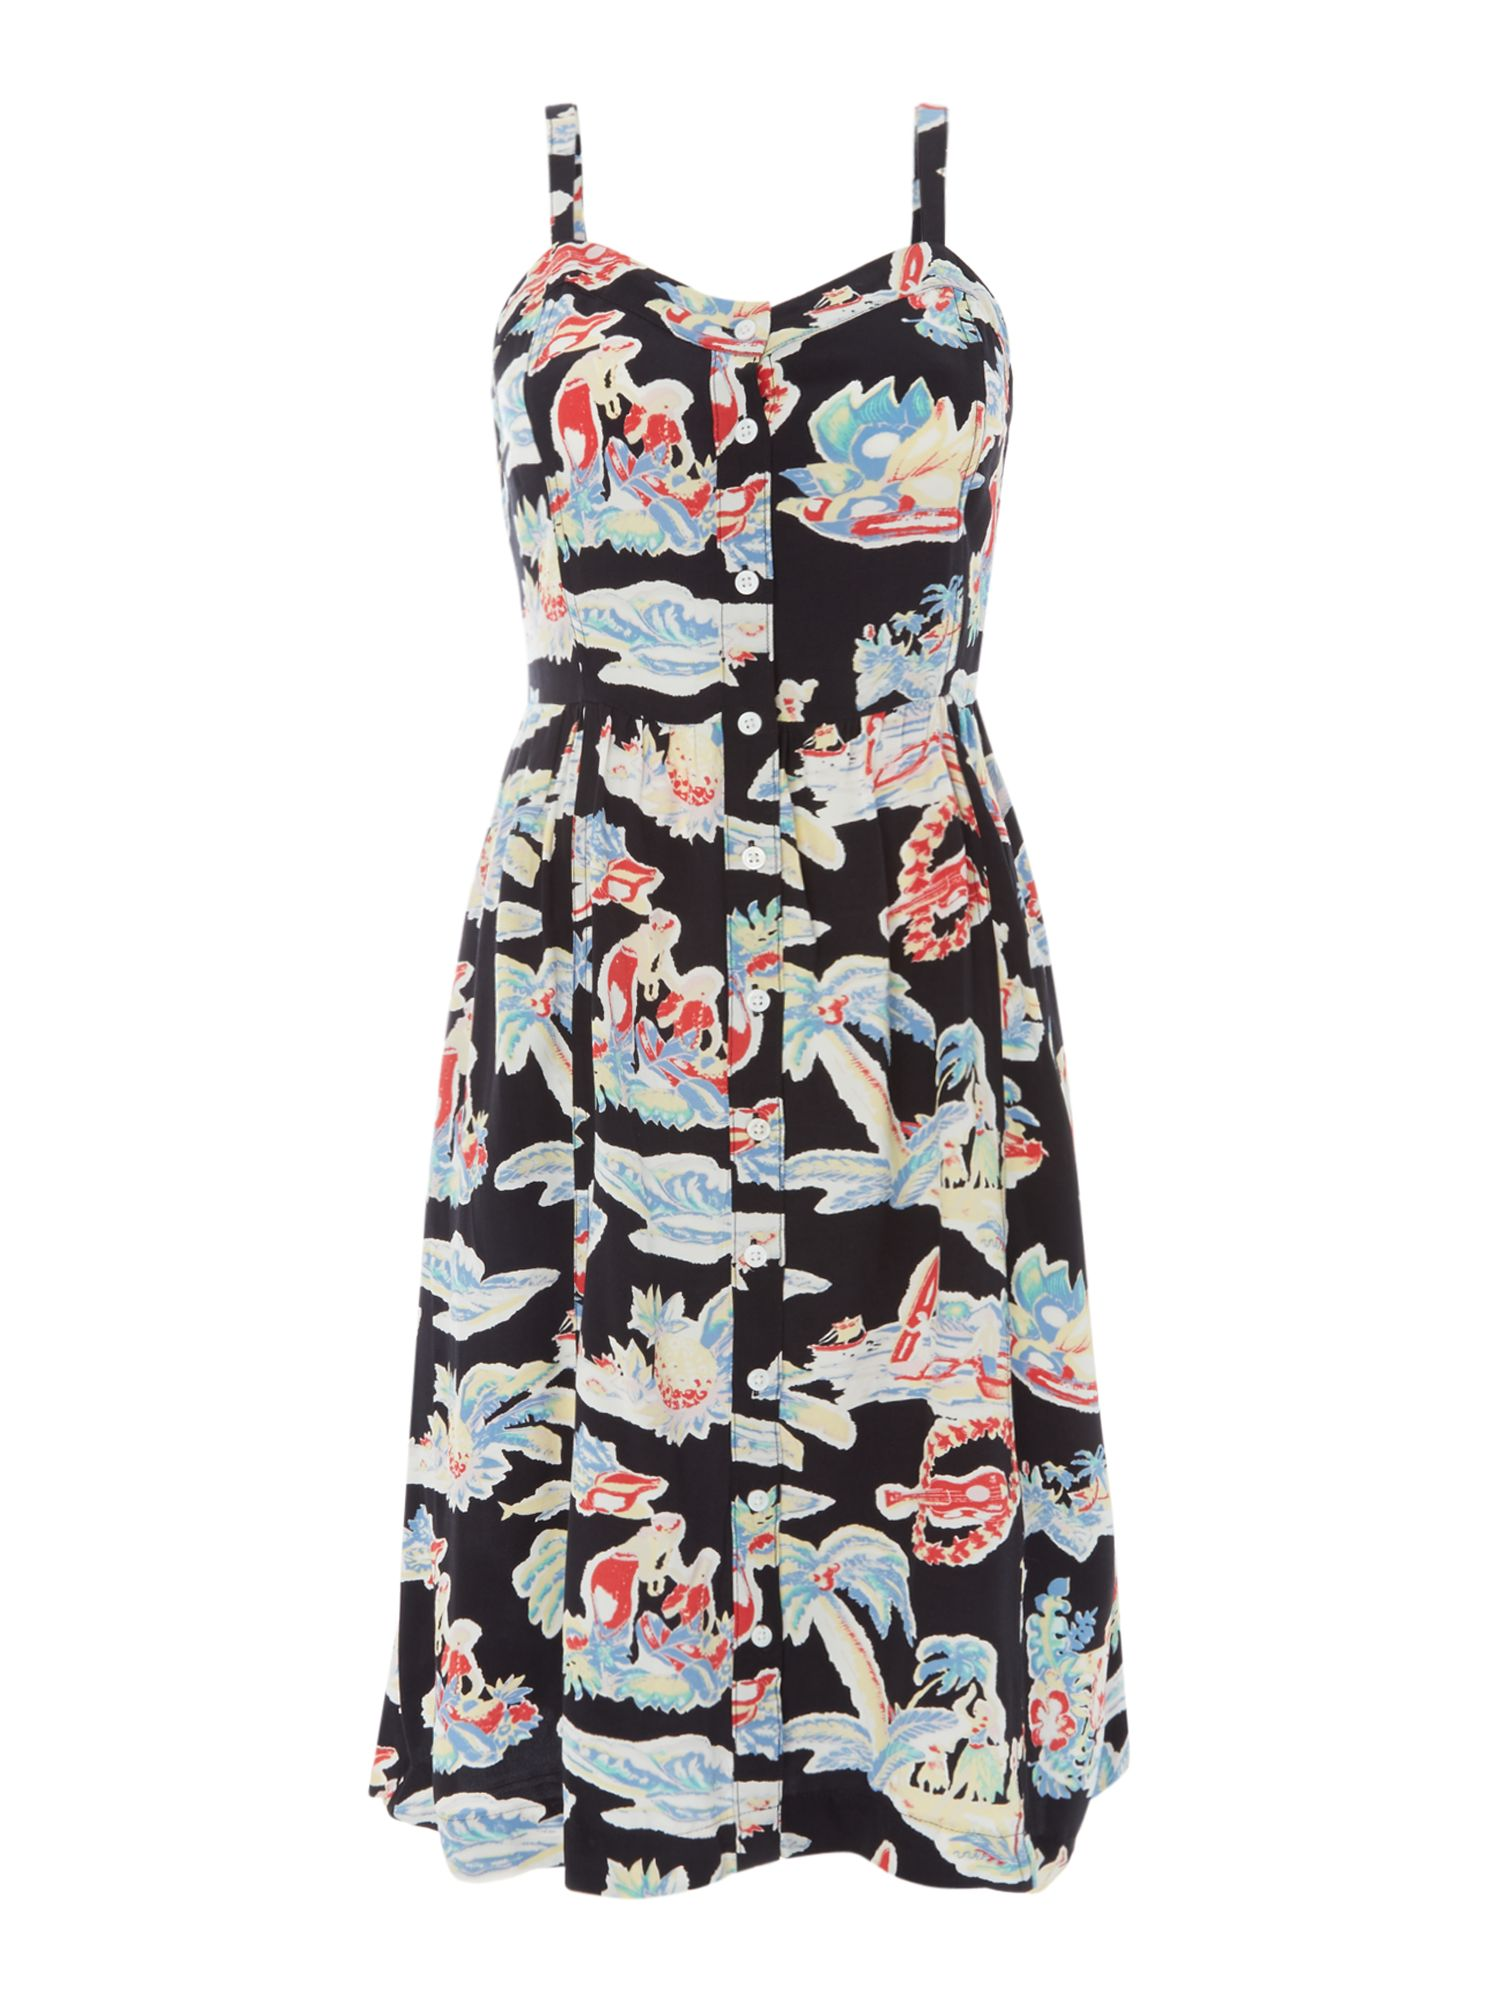 Levi's Graphic Printed Button up Dress, Multi-Coloured